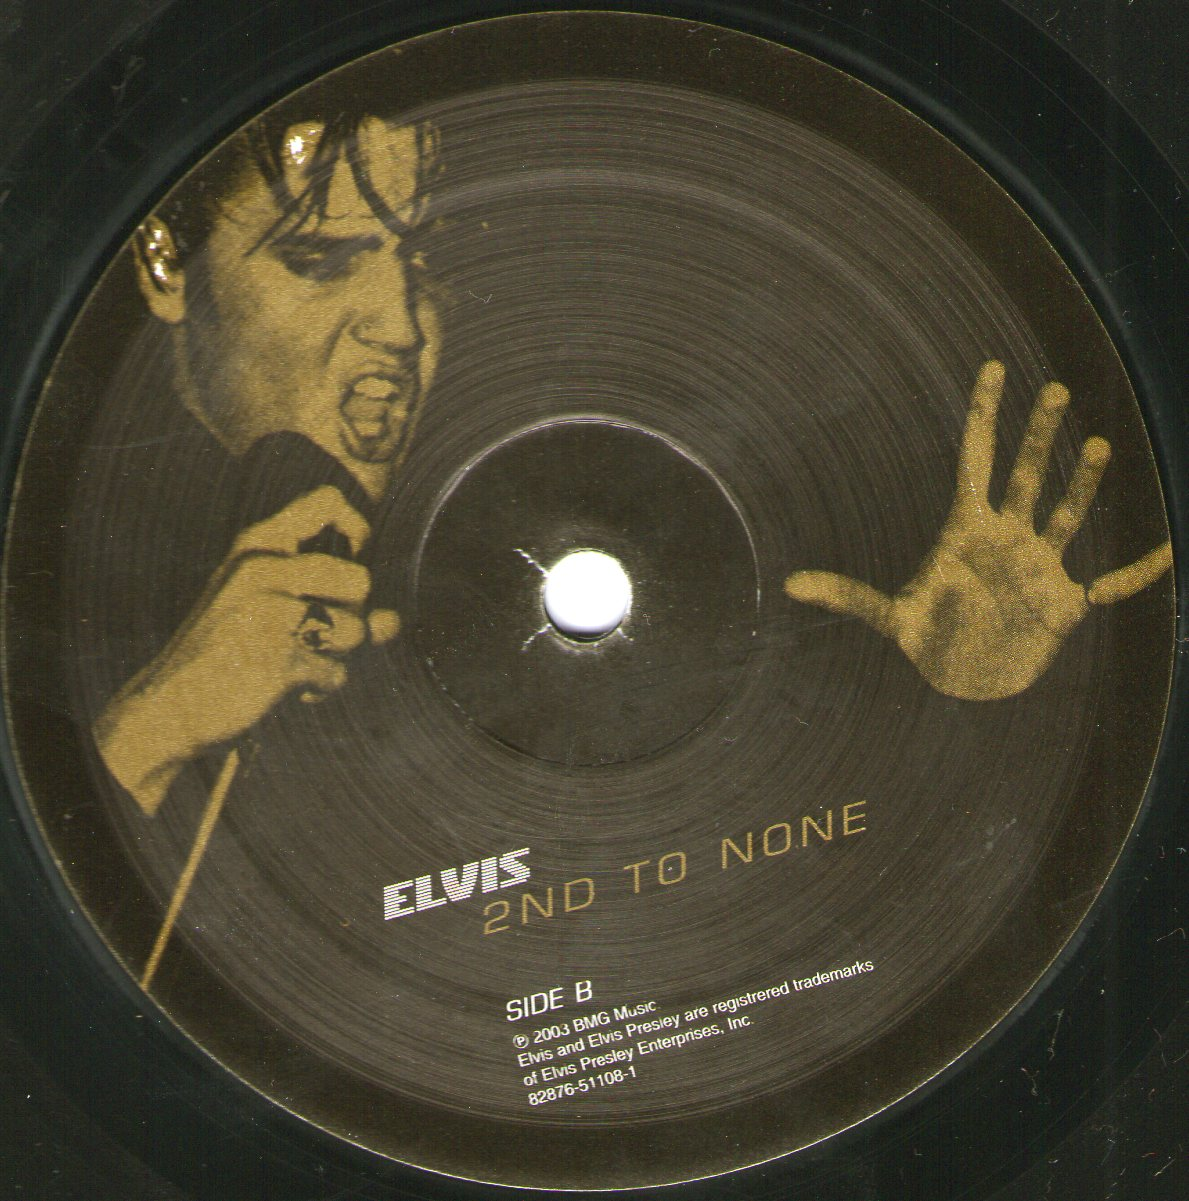 ELVIS 2ND TO NONE Img231e8frt